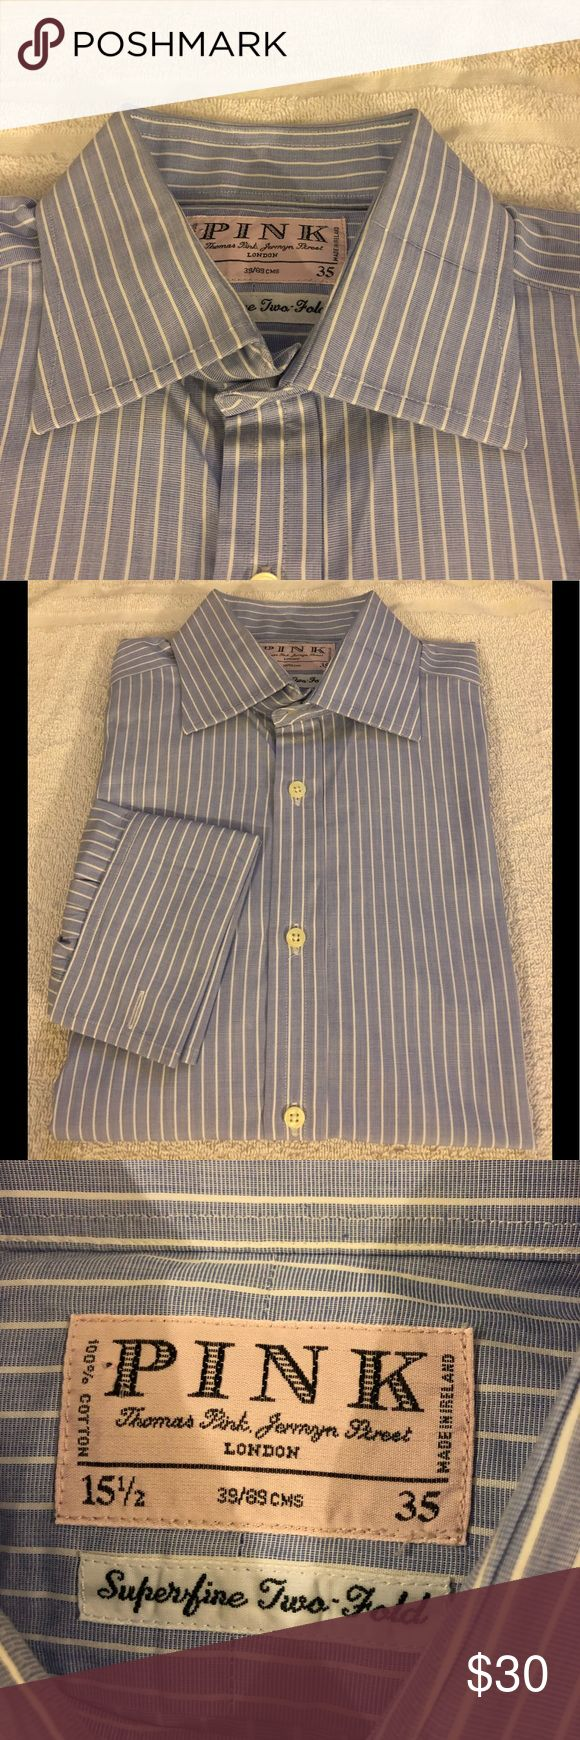 Thomas Pink Blue Stripe French Cuff Shirt 15.5-35 Thomas Pink Blue with White Stripe French Cuff Dress Shirt size 15.5-35! Great condition!  Please make reasonable offers and bundle! Ask questions :) Thomas Pink Shirts Dress Shirts